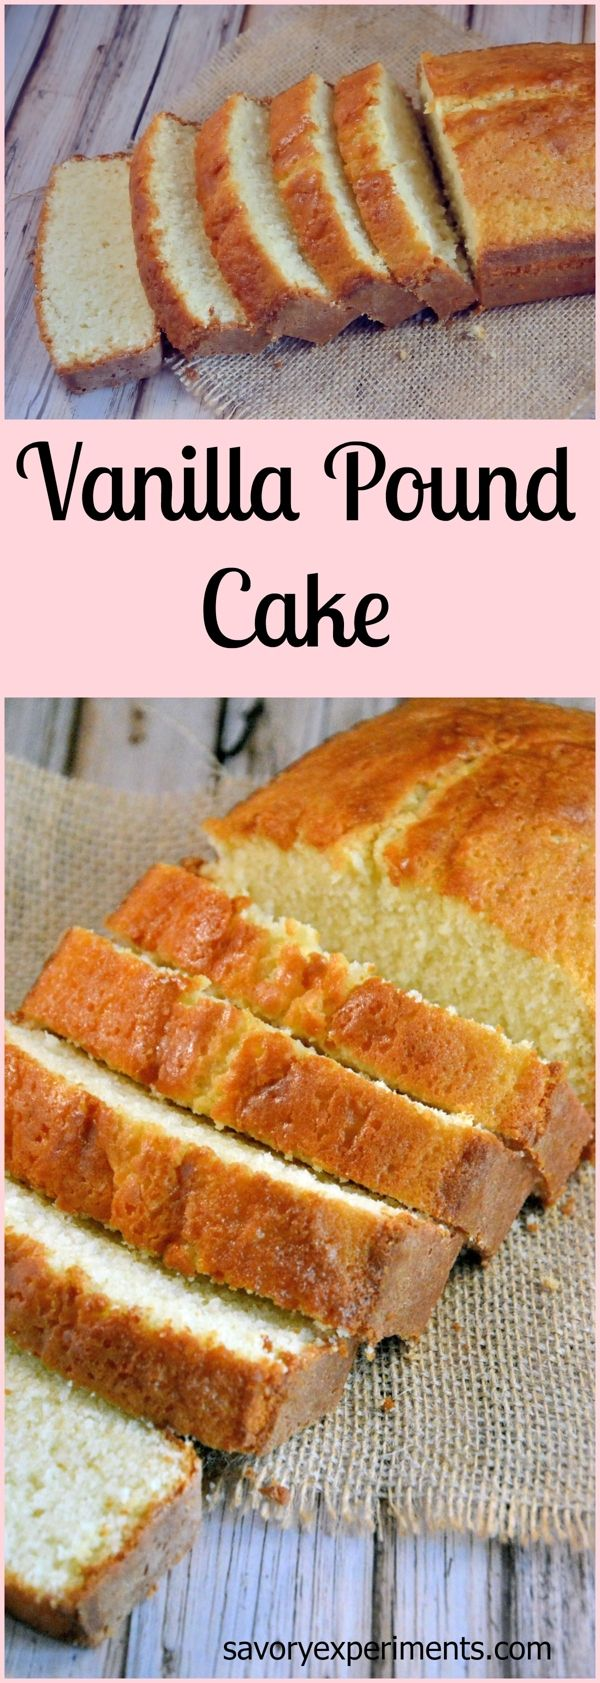 Vanilla Pound Cake Recipe- Every home cook needs a classic vanilla pound cake recipe. This one is hands down THE BEST!